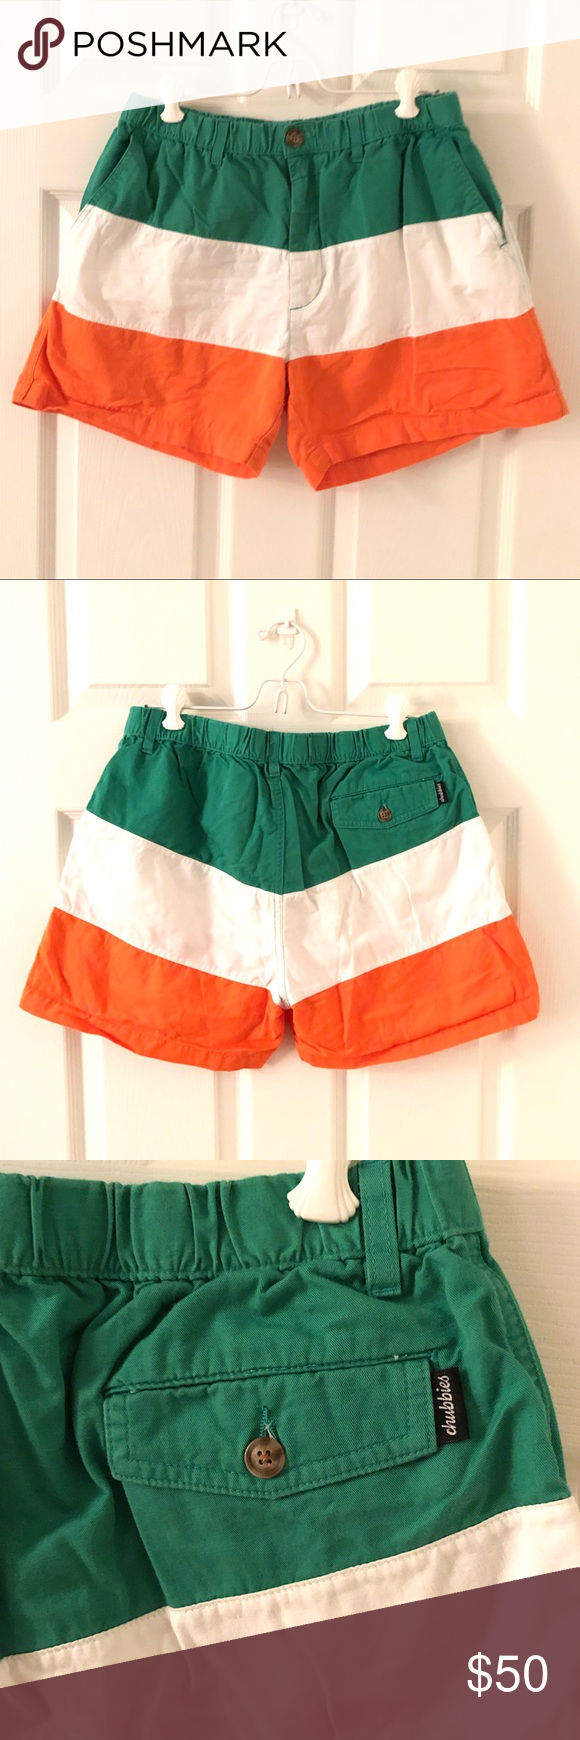 36e778d12 Chubbies St. Patrick's day shorts sz L Chubbies St. Patrick's day shorts sz  L Excellent preowned condition No damage noted chubbies Shorts